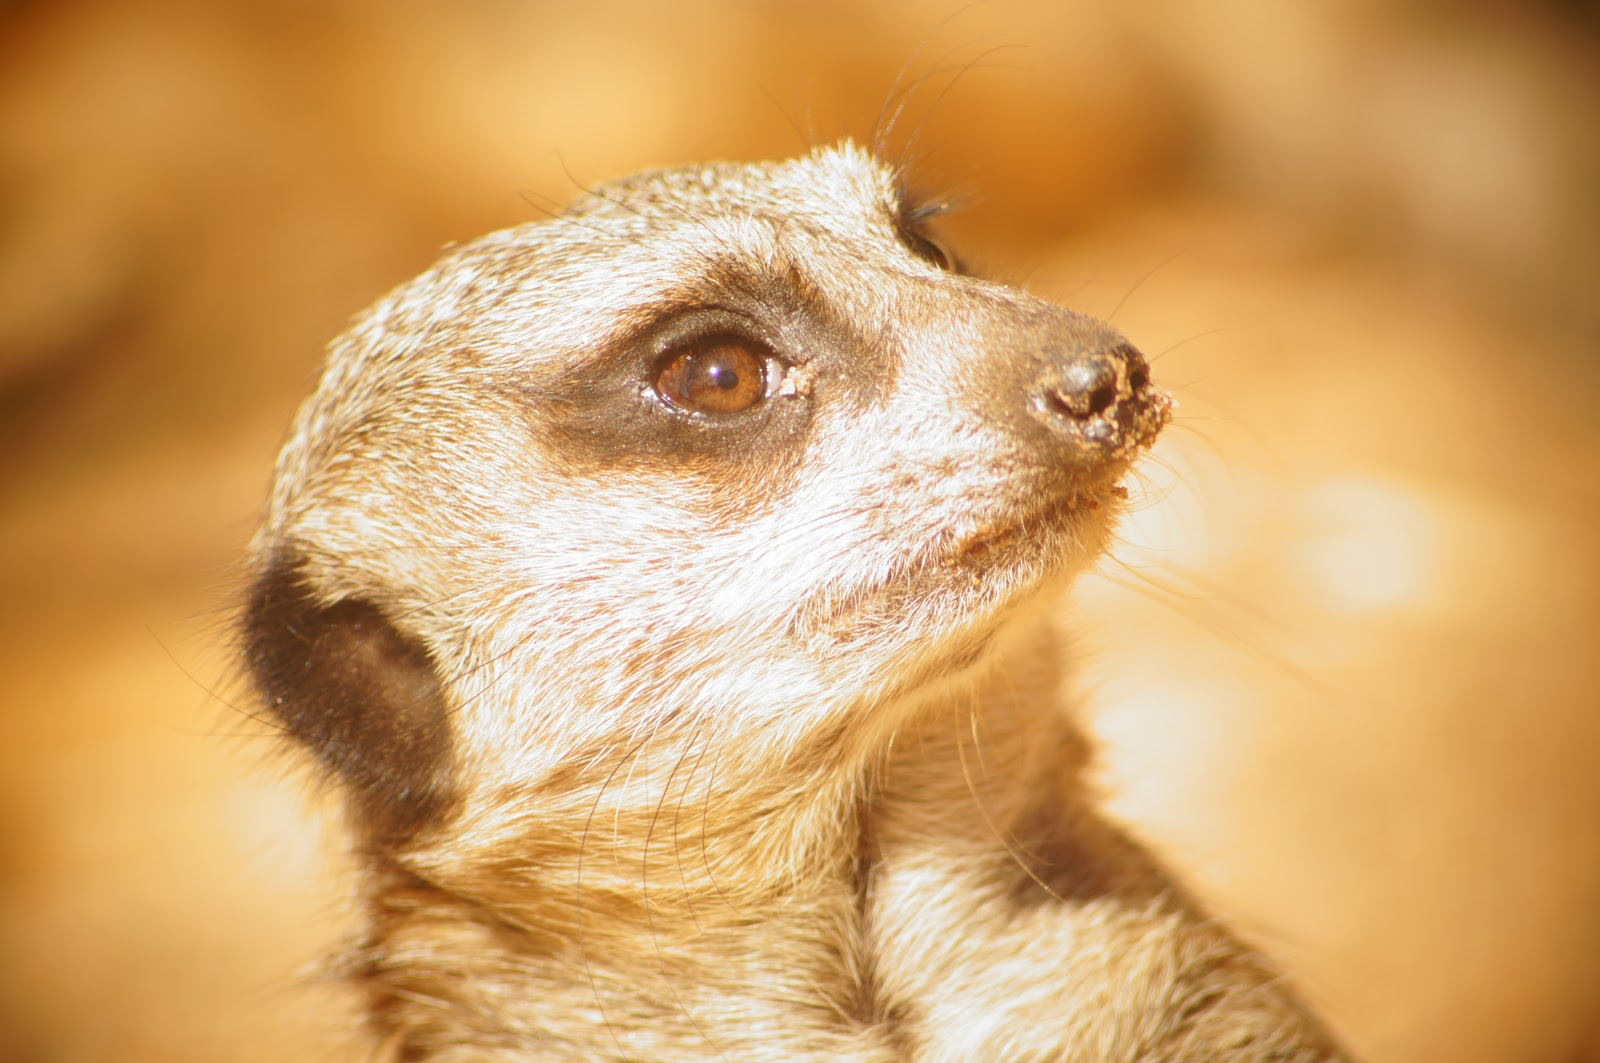 meerkat free pictures for blogs